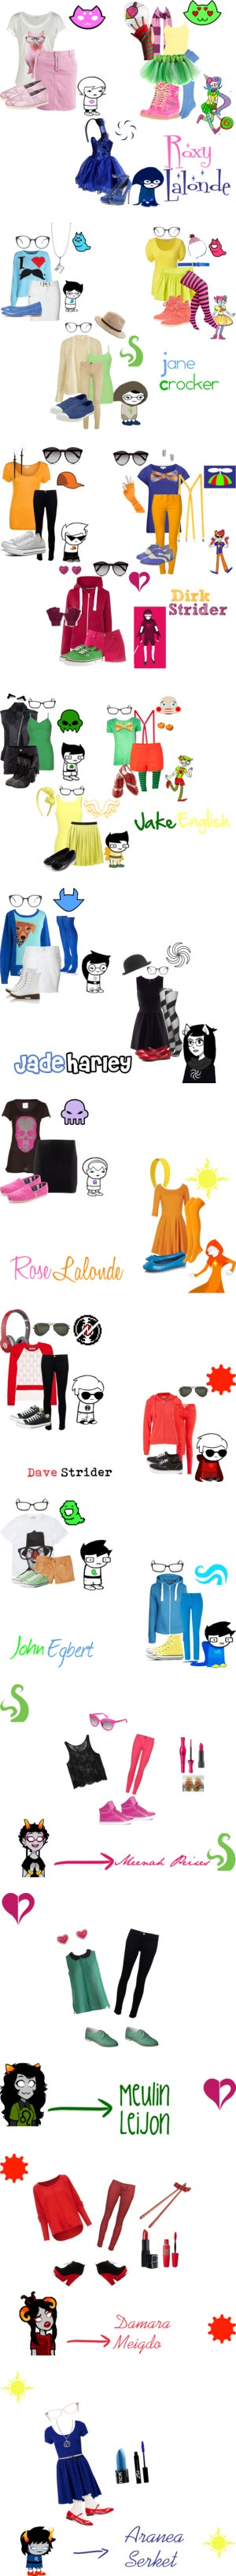 """""""FashionStuck"""" by honeysenpai ❤ liked on Polyvore"""